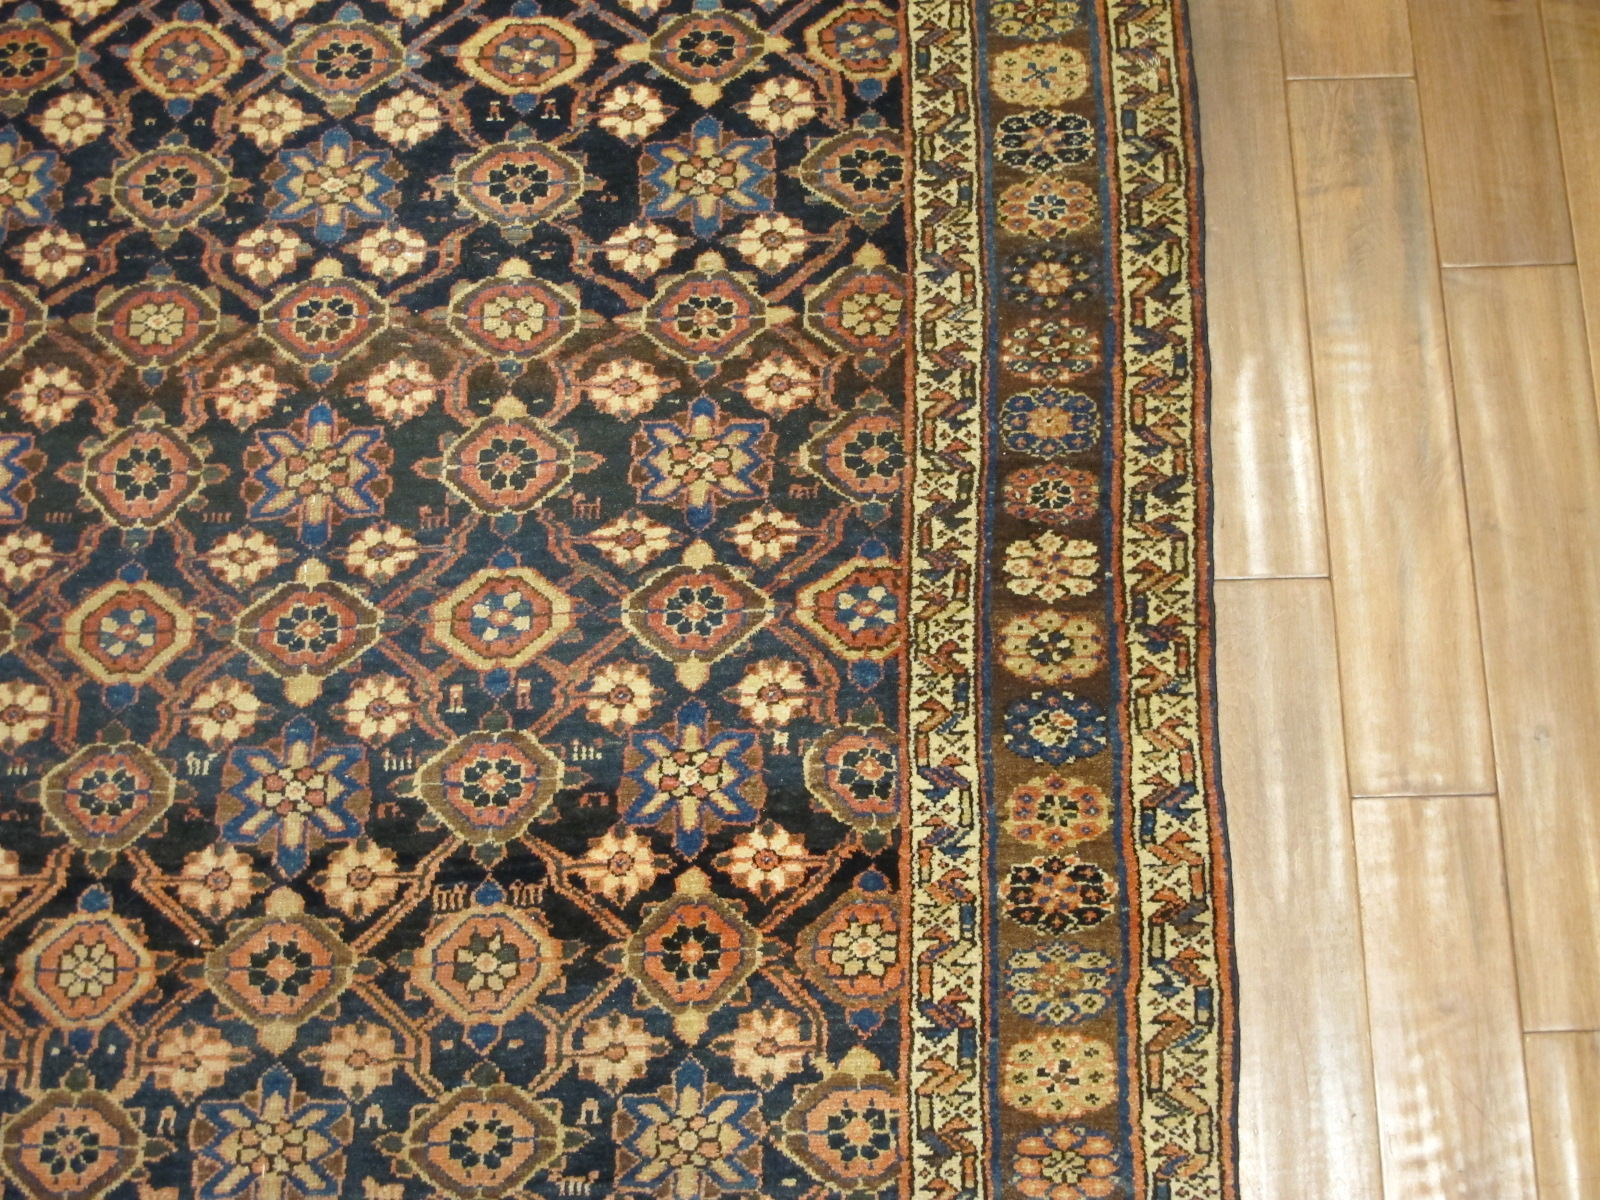 22148 Antique Persian Veramin gallery rug 5,5 x 11,2 (4)